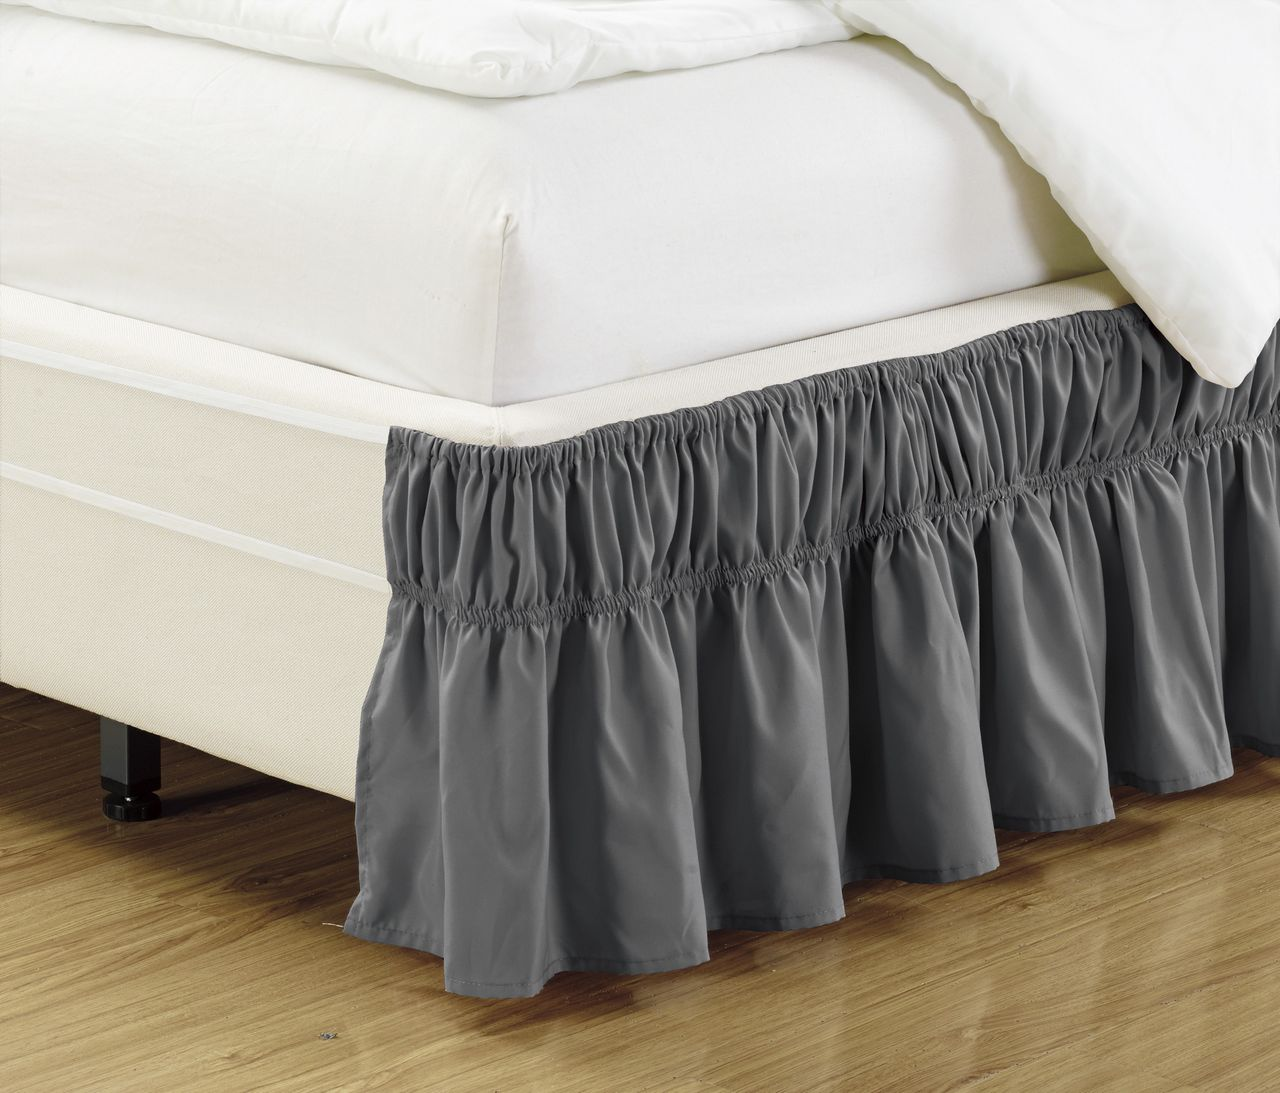 ruffled bed skirt charcoal. Black Bedroom Furniture Sets. Home Design Ideas